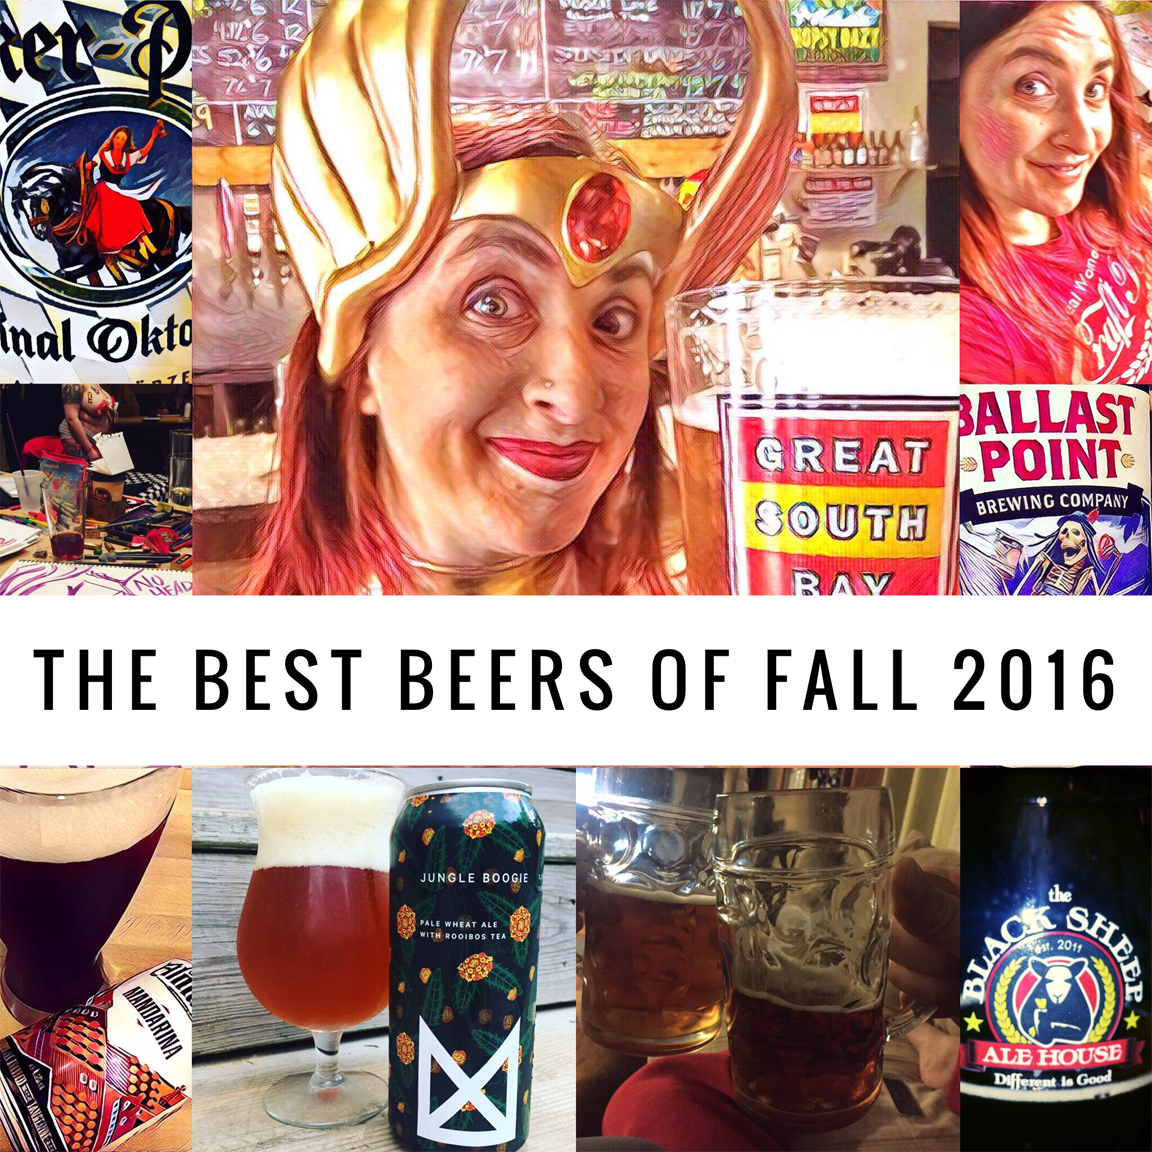 The Best Beers Of Fall 2016